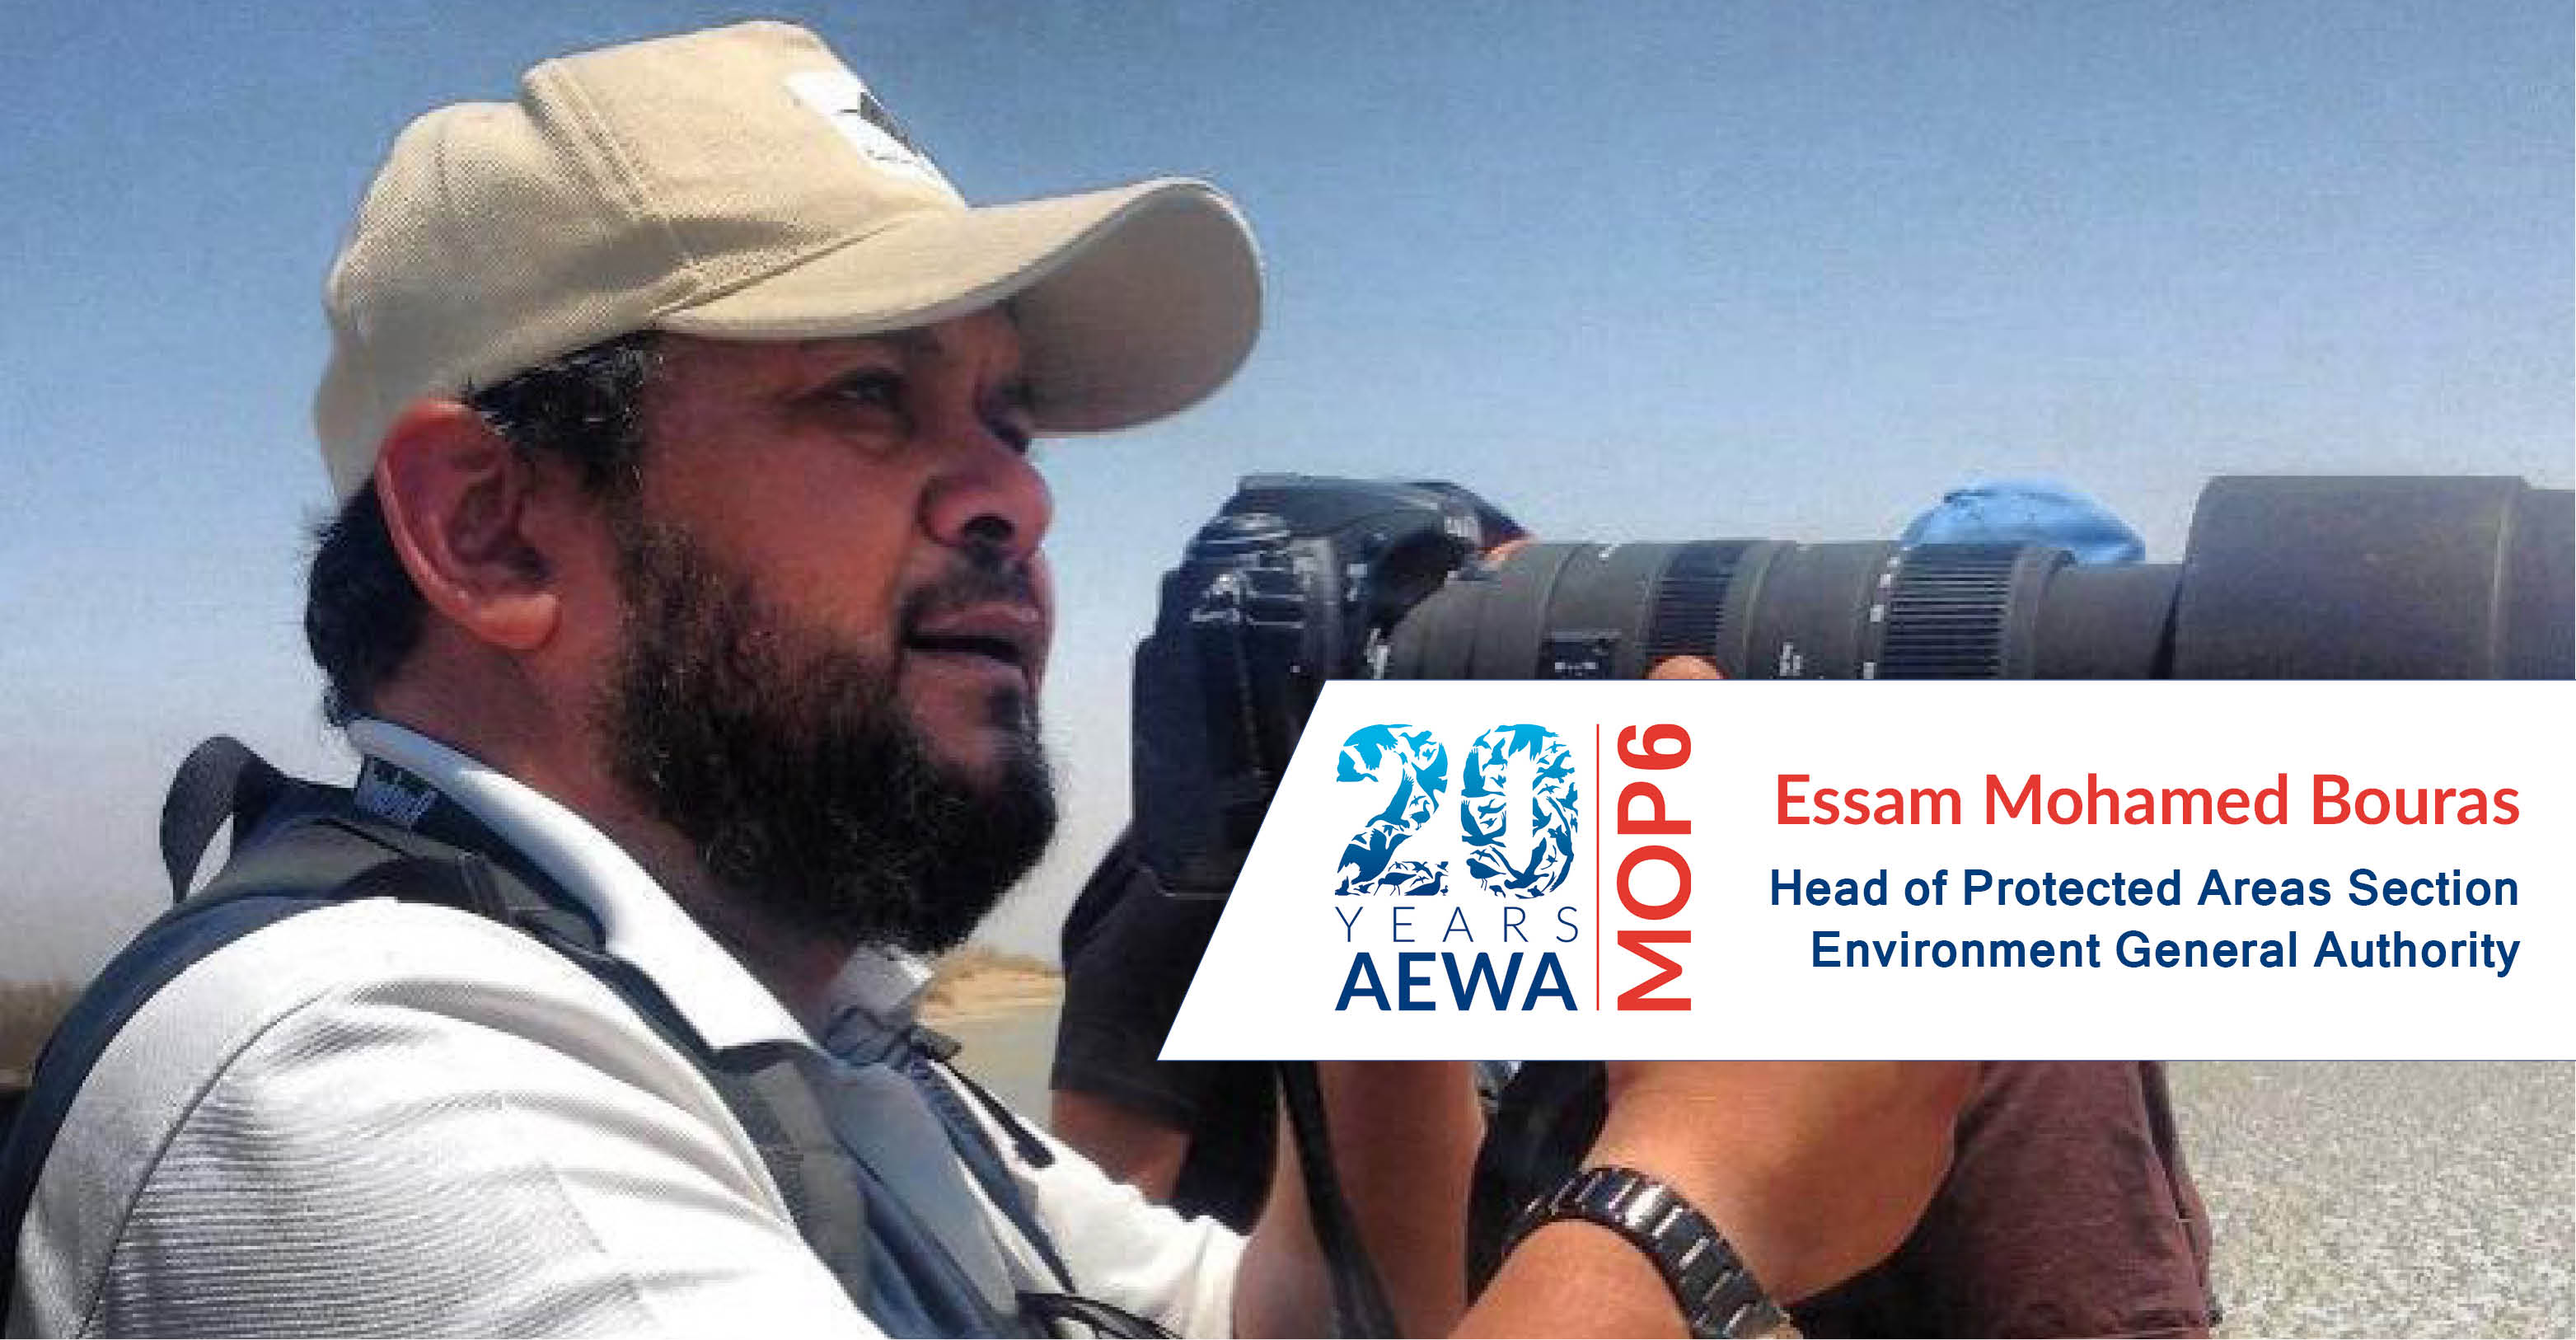 People behind AEWA - Essam Mohamed Bouras